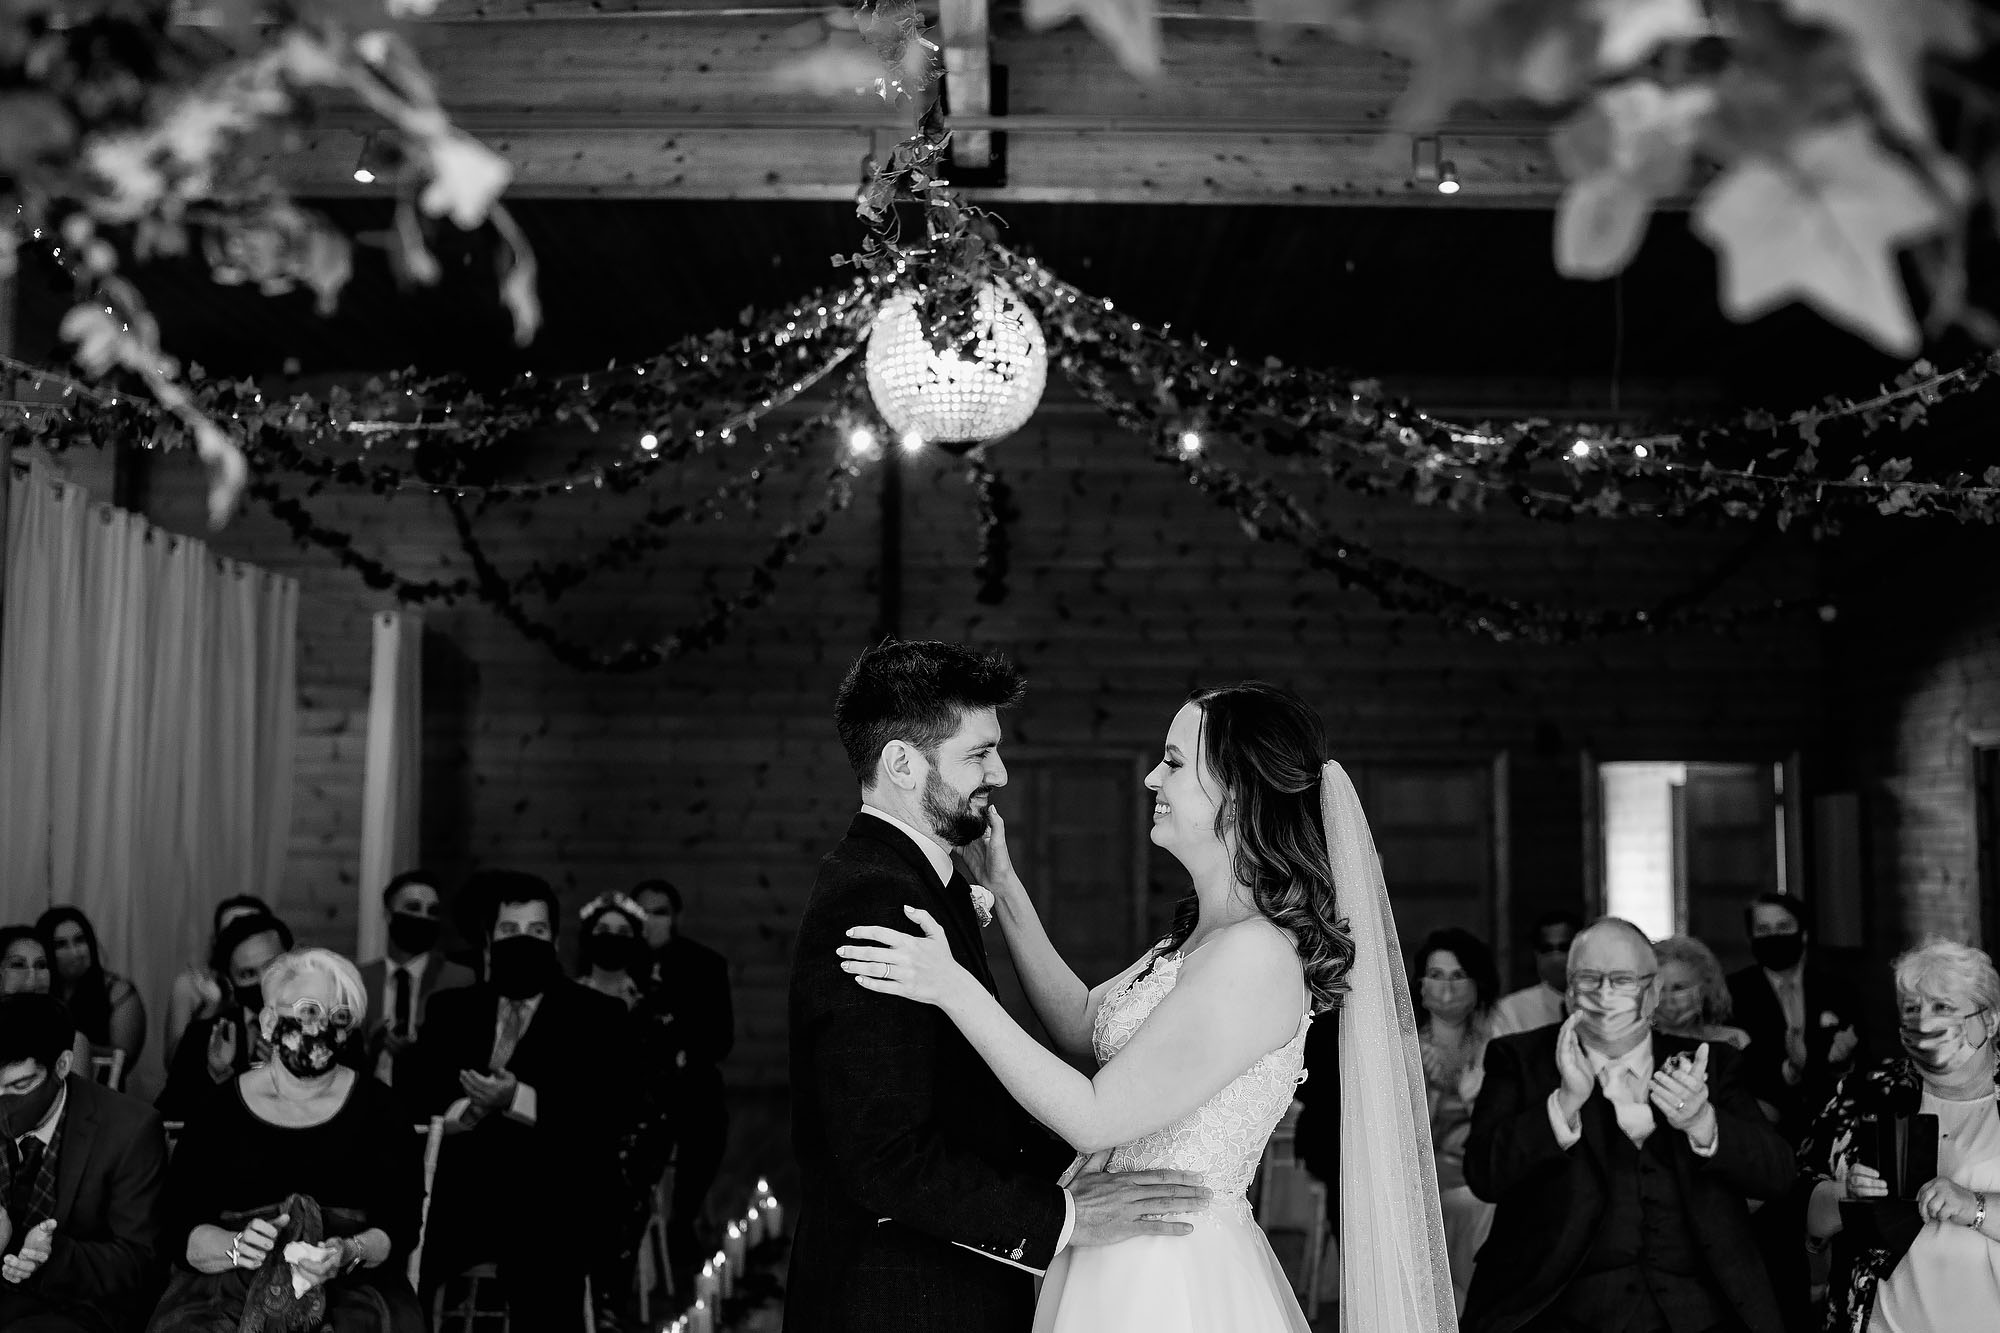 Cheshire wedding at styal lodge - cheshire wedding photography by arj photography®